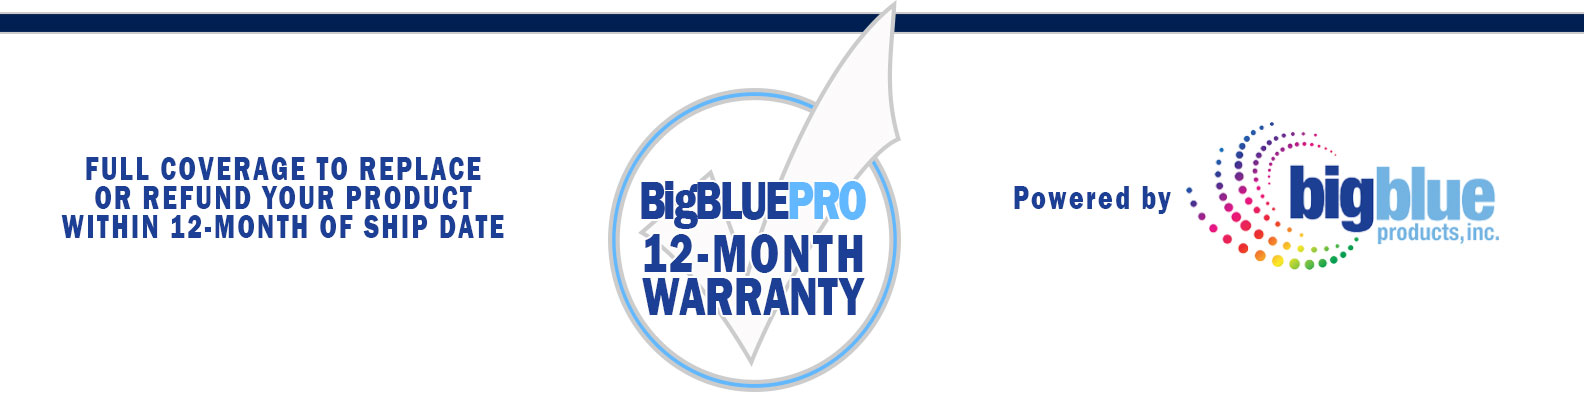 Big Blue Products Warranty Policy Information